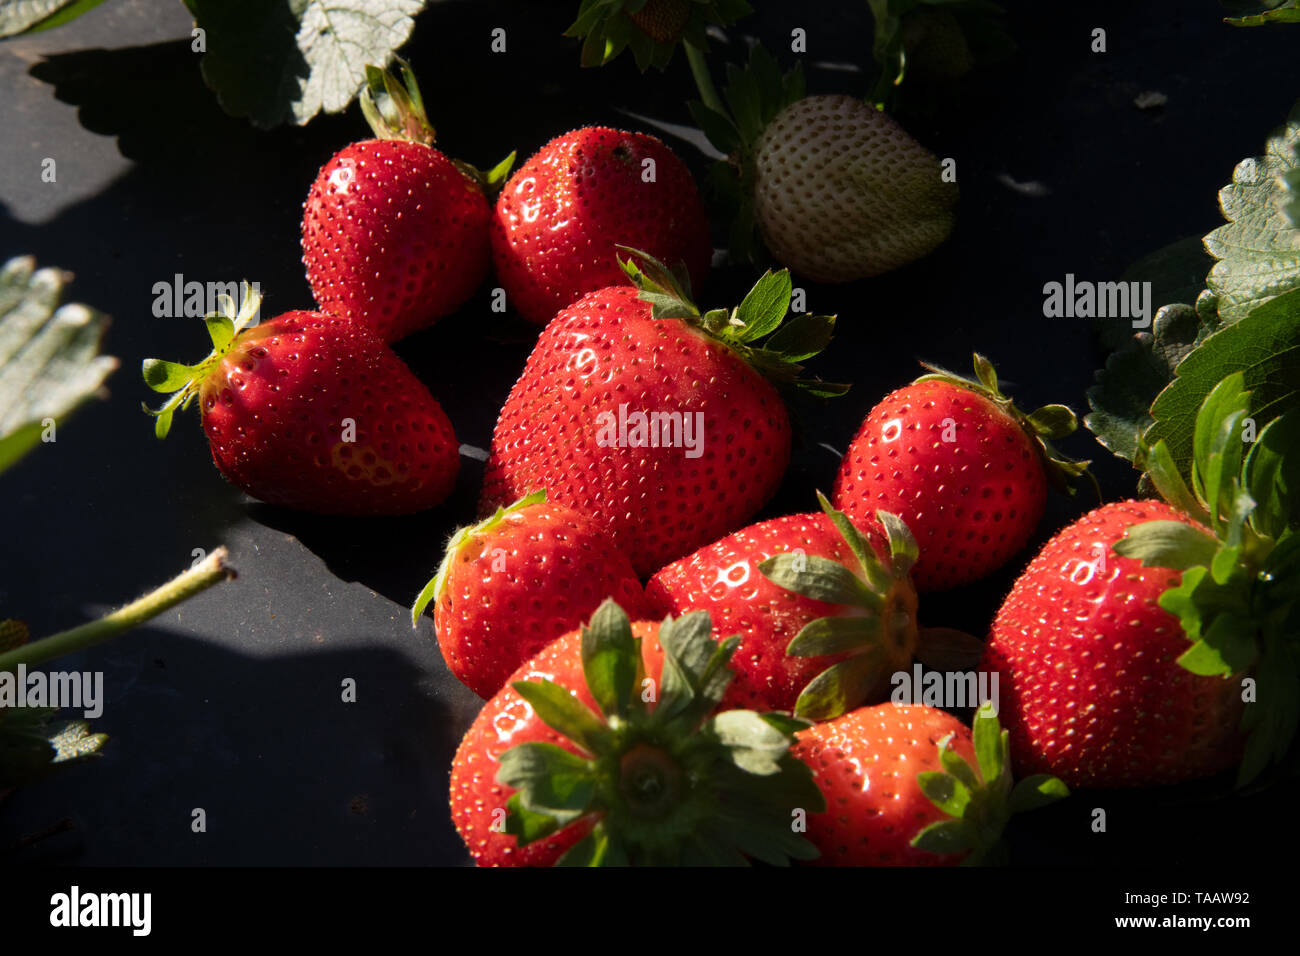 Farm fresh strawberries at Lewis Taylor Farms await harvest May 7, 2019 in Fort Valley, Georgia. A, on May 7, 2019. Farms rely on seasonal labor using the H-2A visa program for temporary agricultural workers often called the guest worker program. - Stock Image